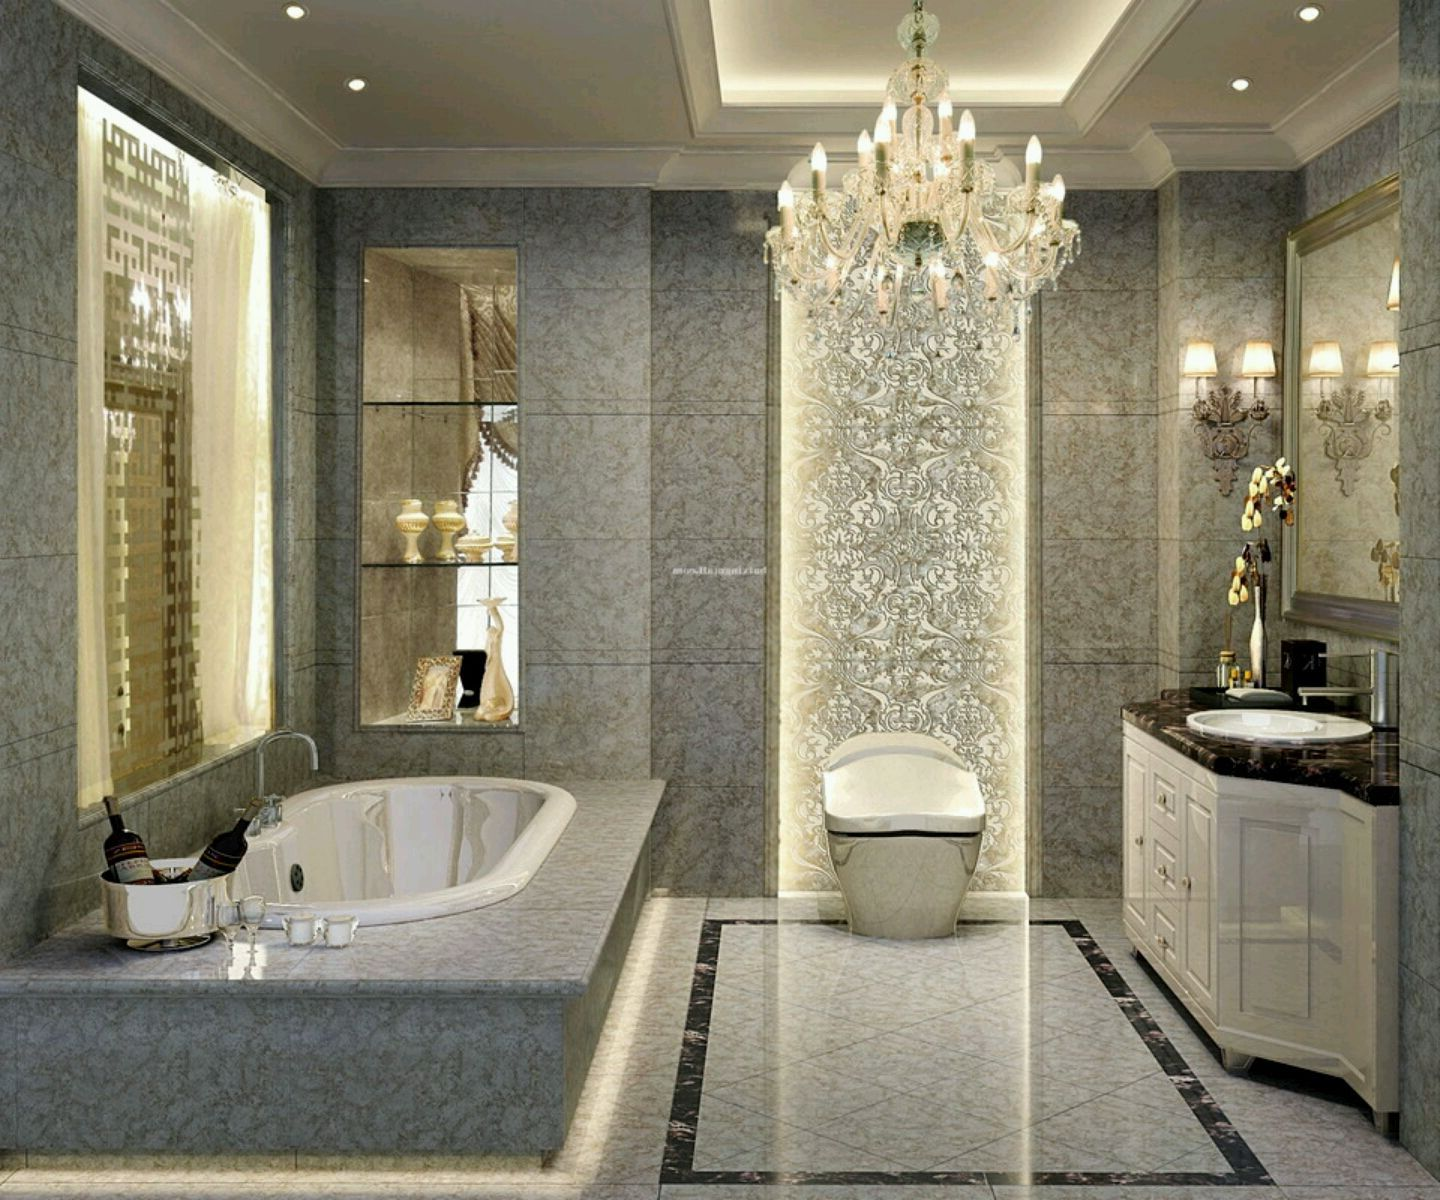 Best Kitchen Gallery: 25 Modern Luxury Bathroom Designs Modern Luxury Bathroom Bathroom of Luxury Bathroom Design  on rachelxblog.com